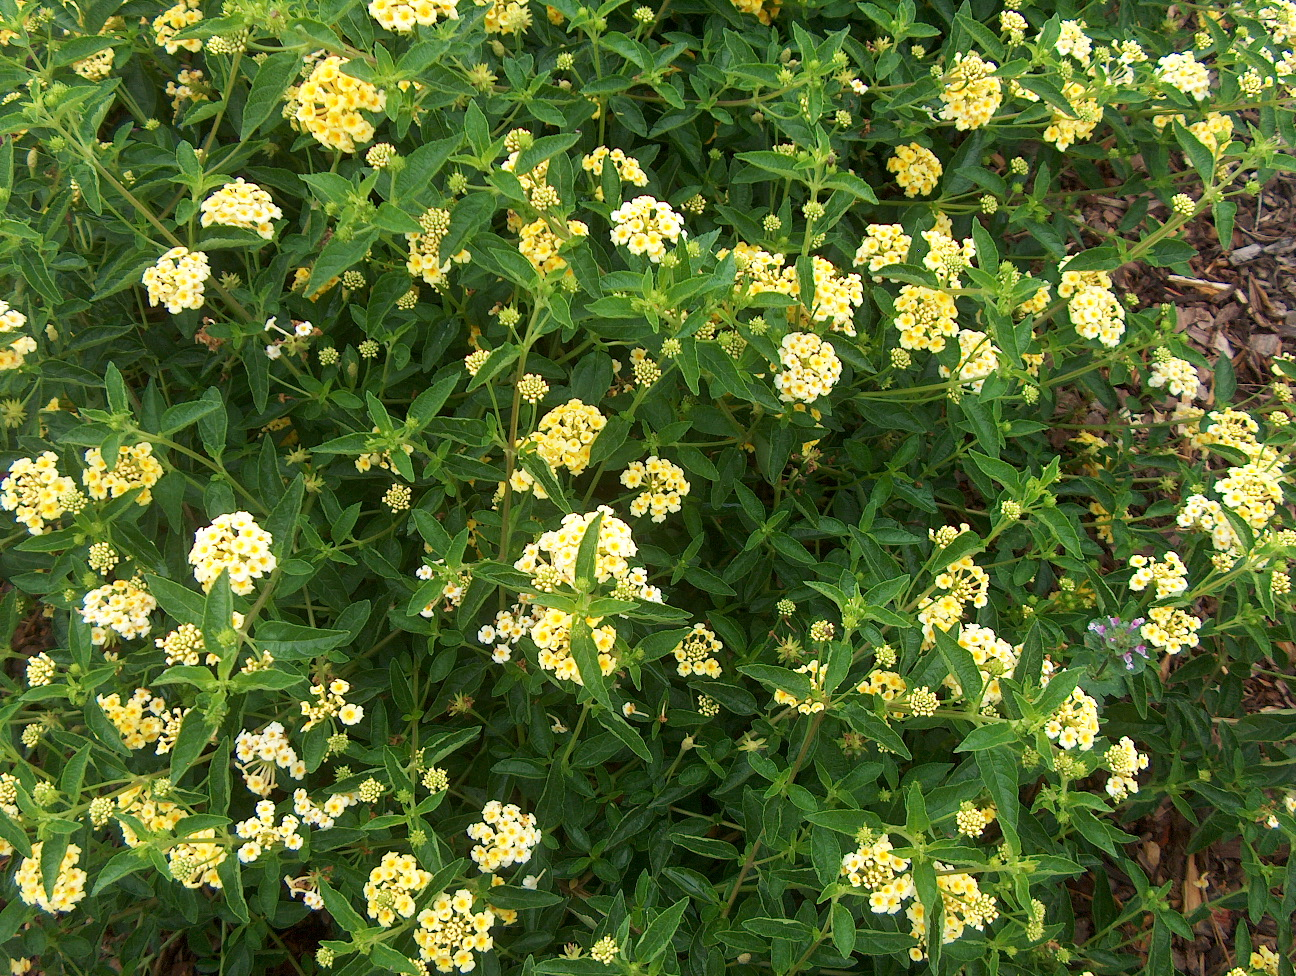 Lantana camara 'Patriot Jo's Chief' / Lantana camara 'Patriot Jo's Chief'